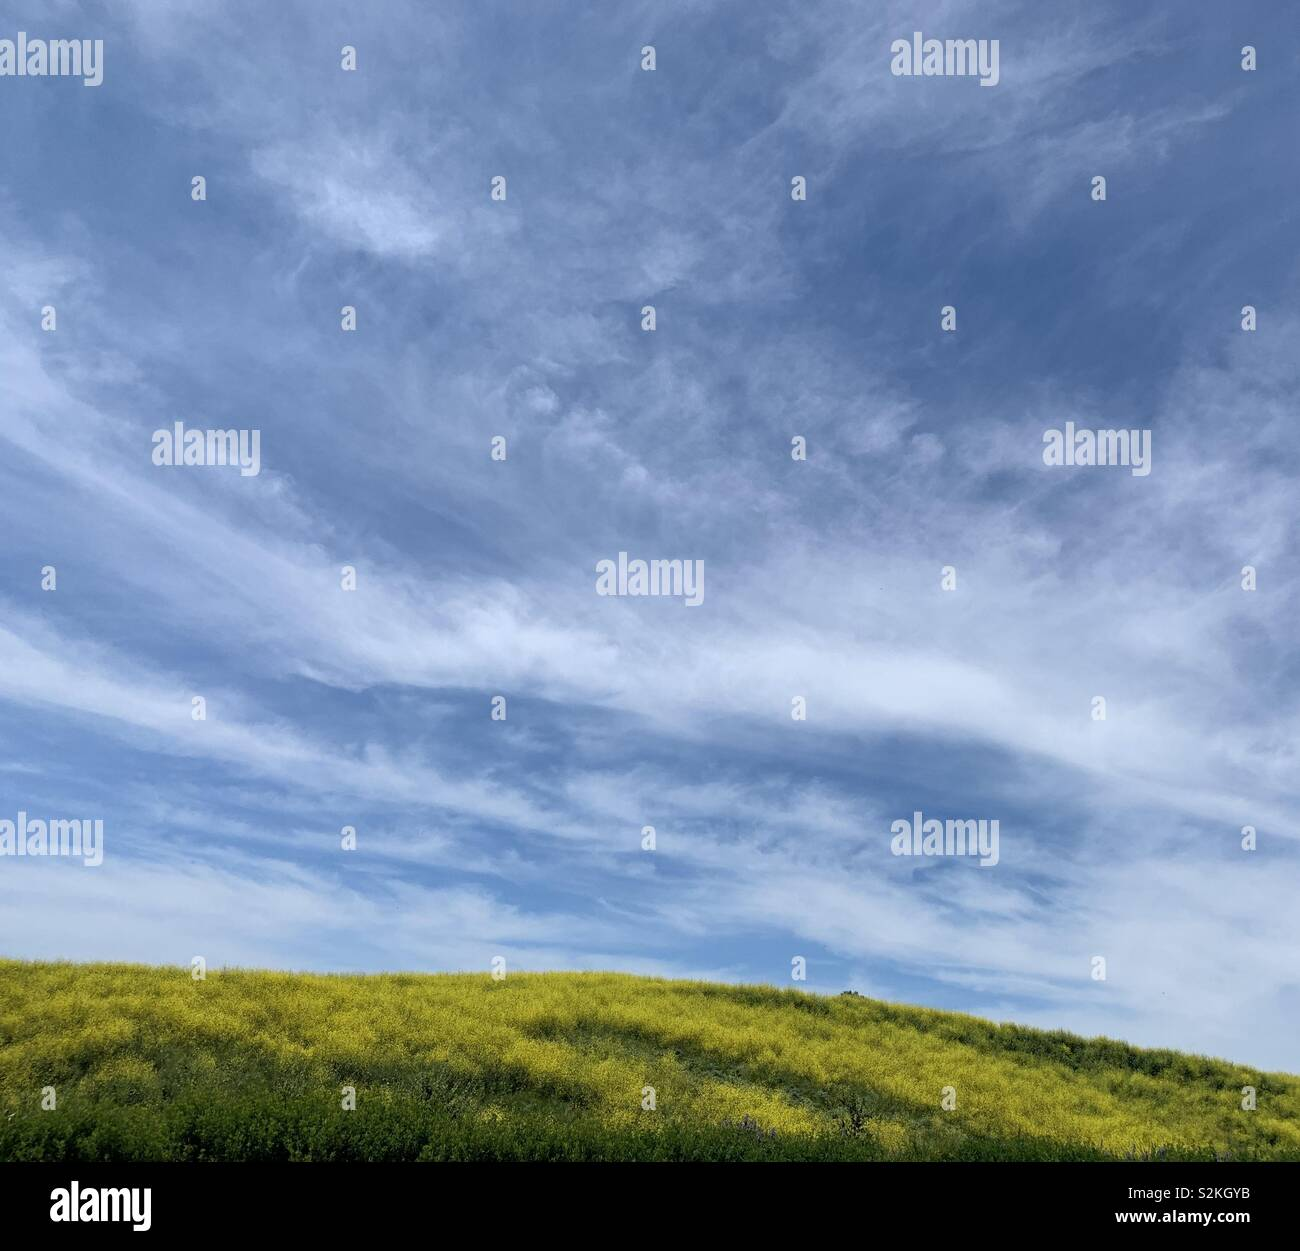 A blue sky over a yellow field in Southern California firing the spring superbloom of 2019. - Stock Image